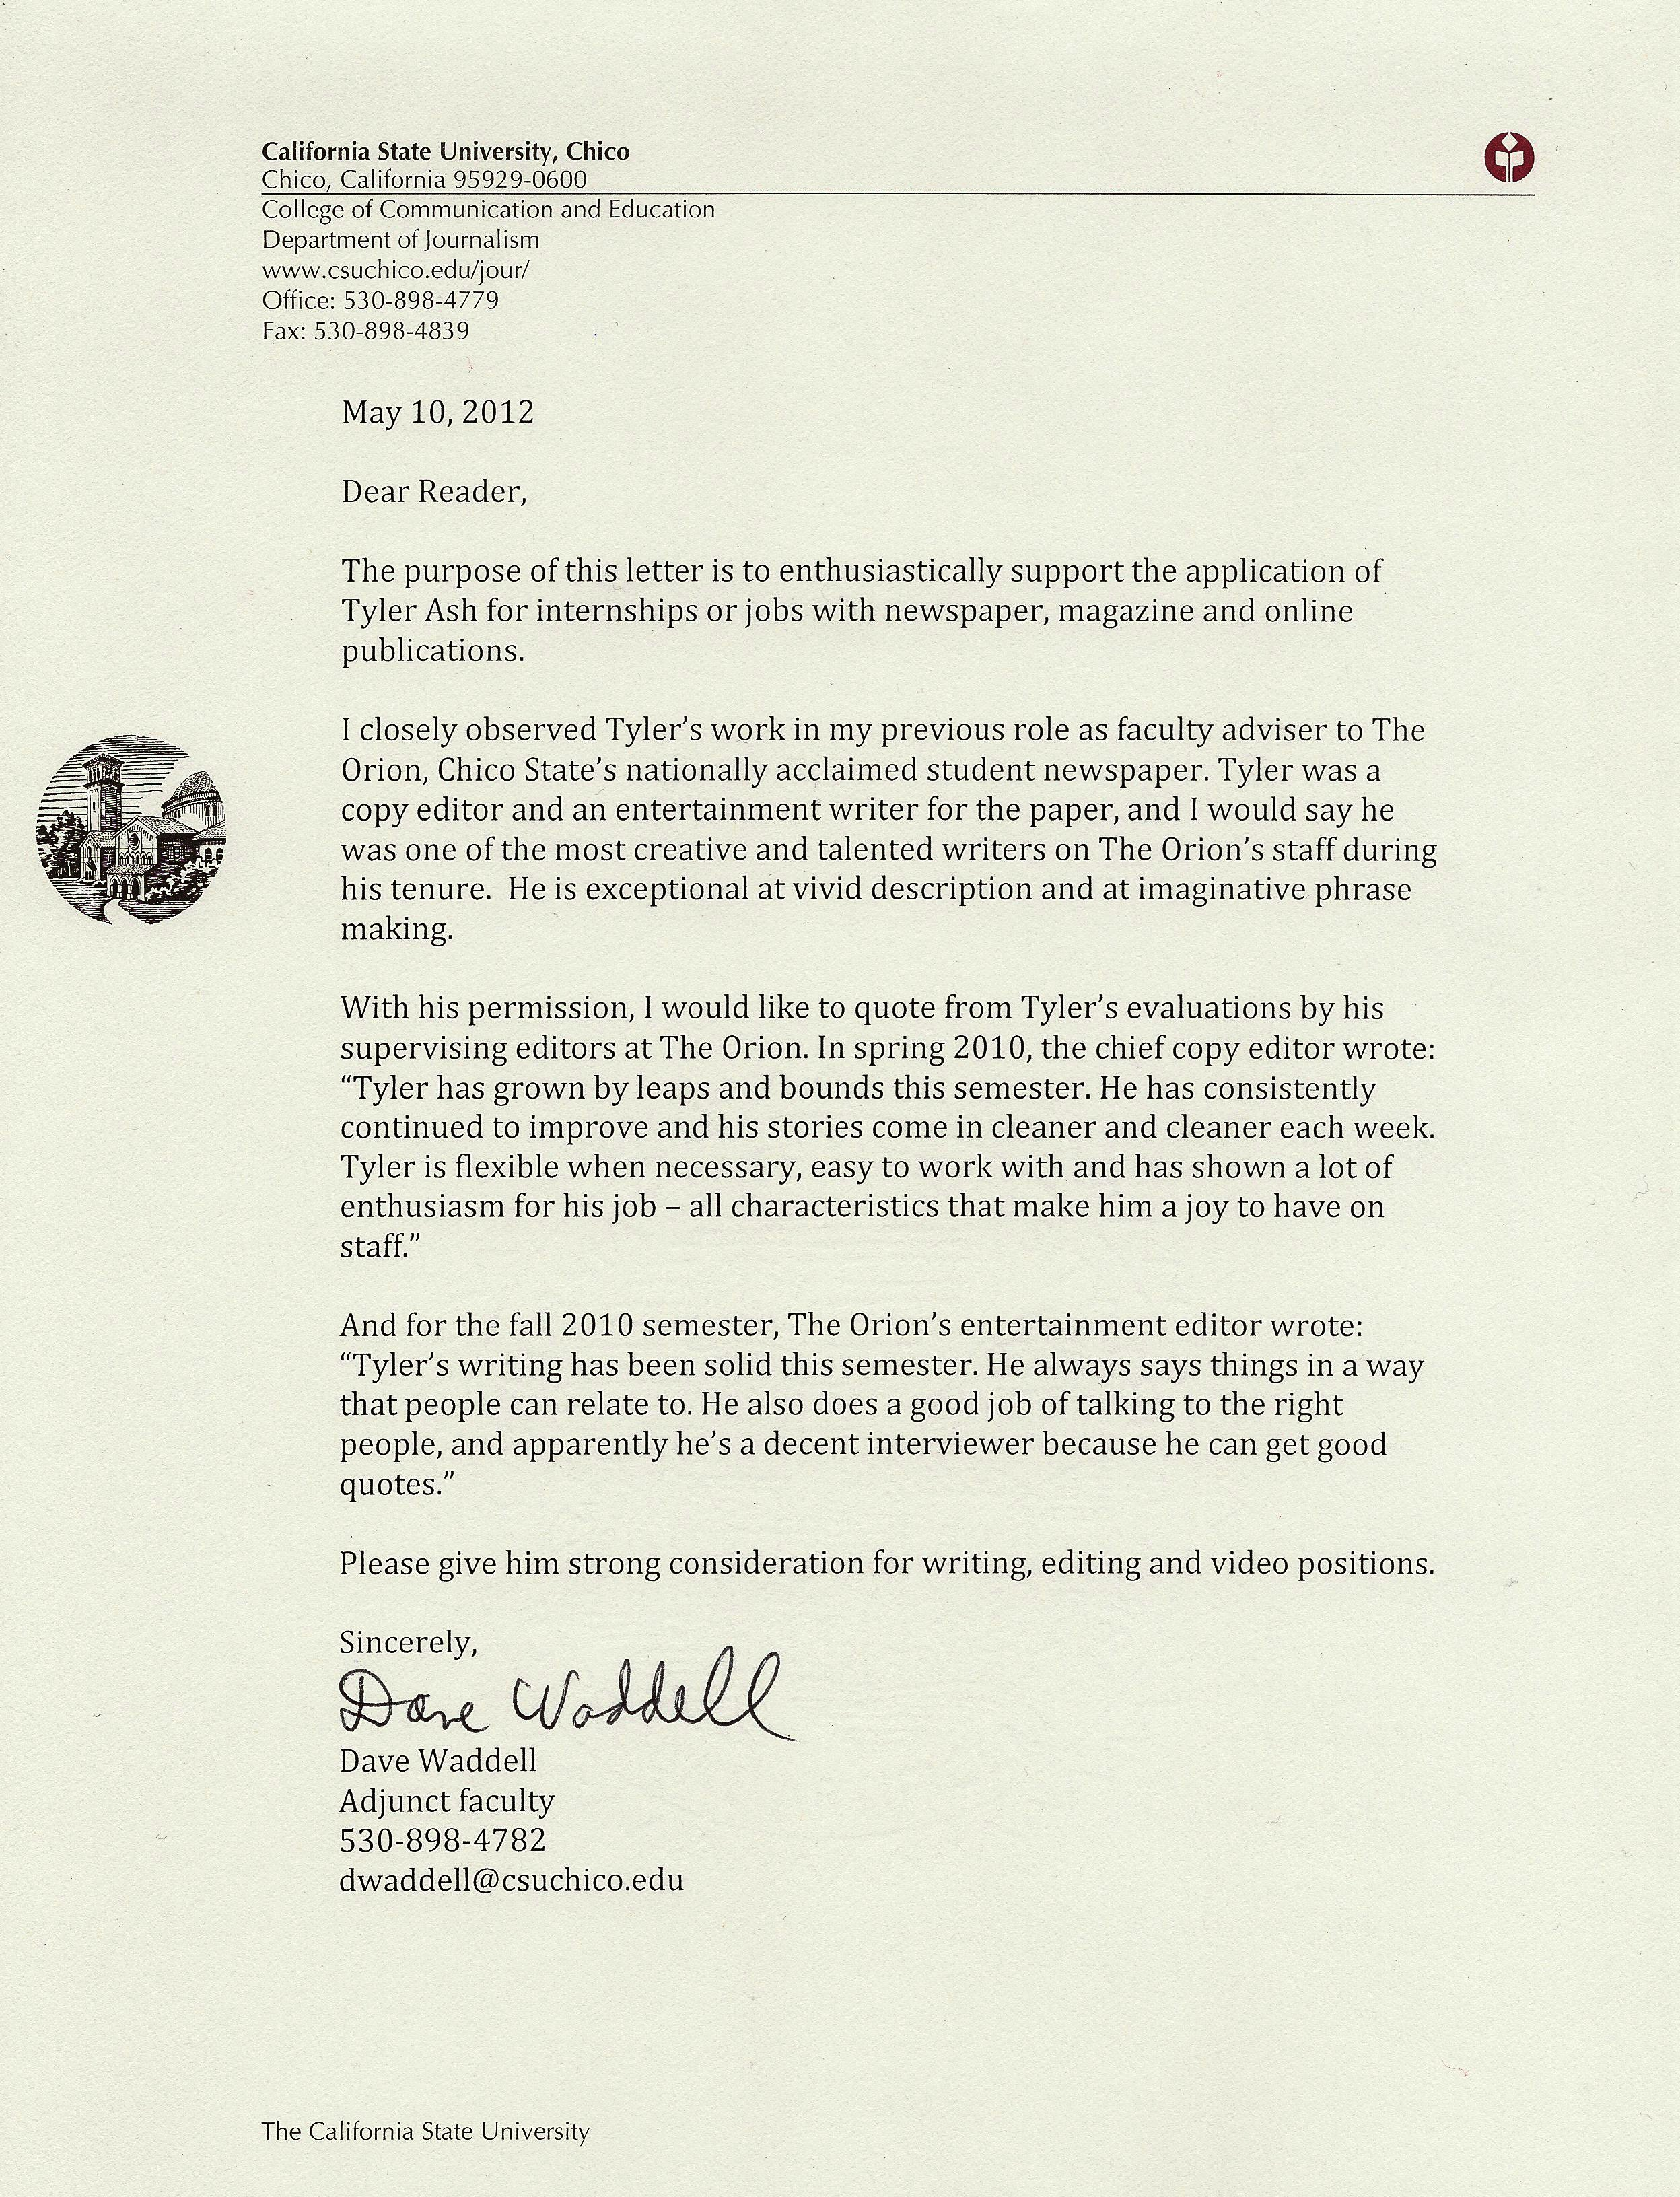 Tenure Recommendation Letter From Student Lovely Letter Of Re Mendation From former Faculty Advisor Of